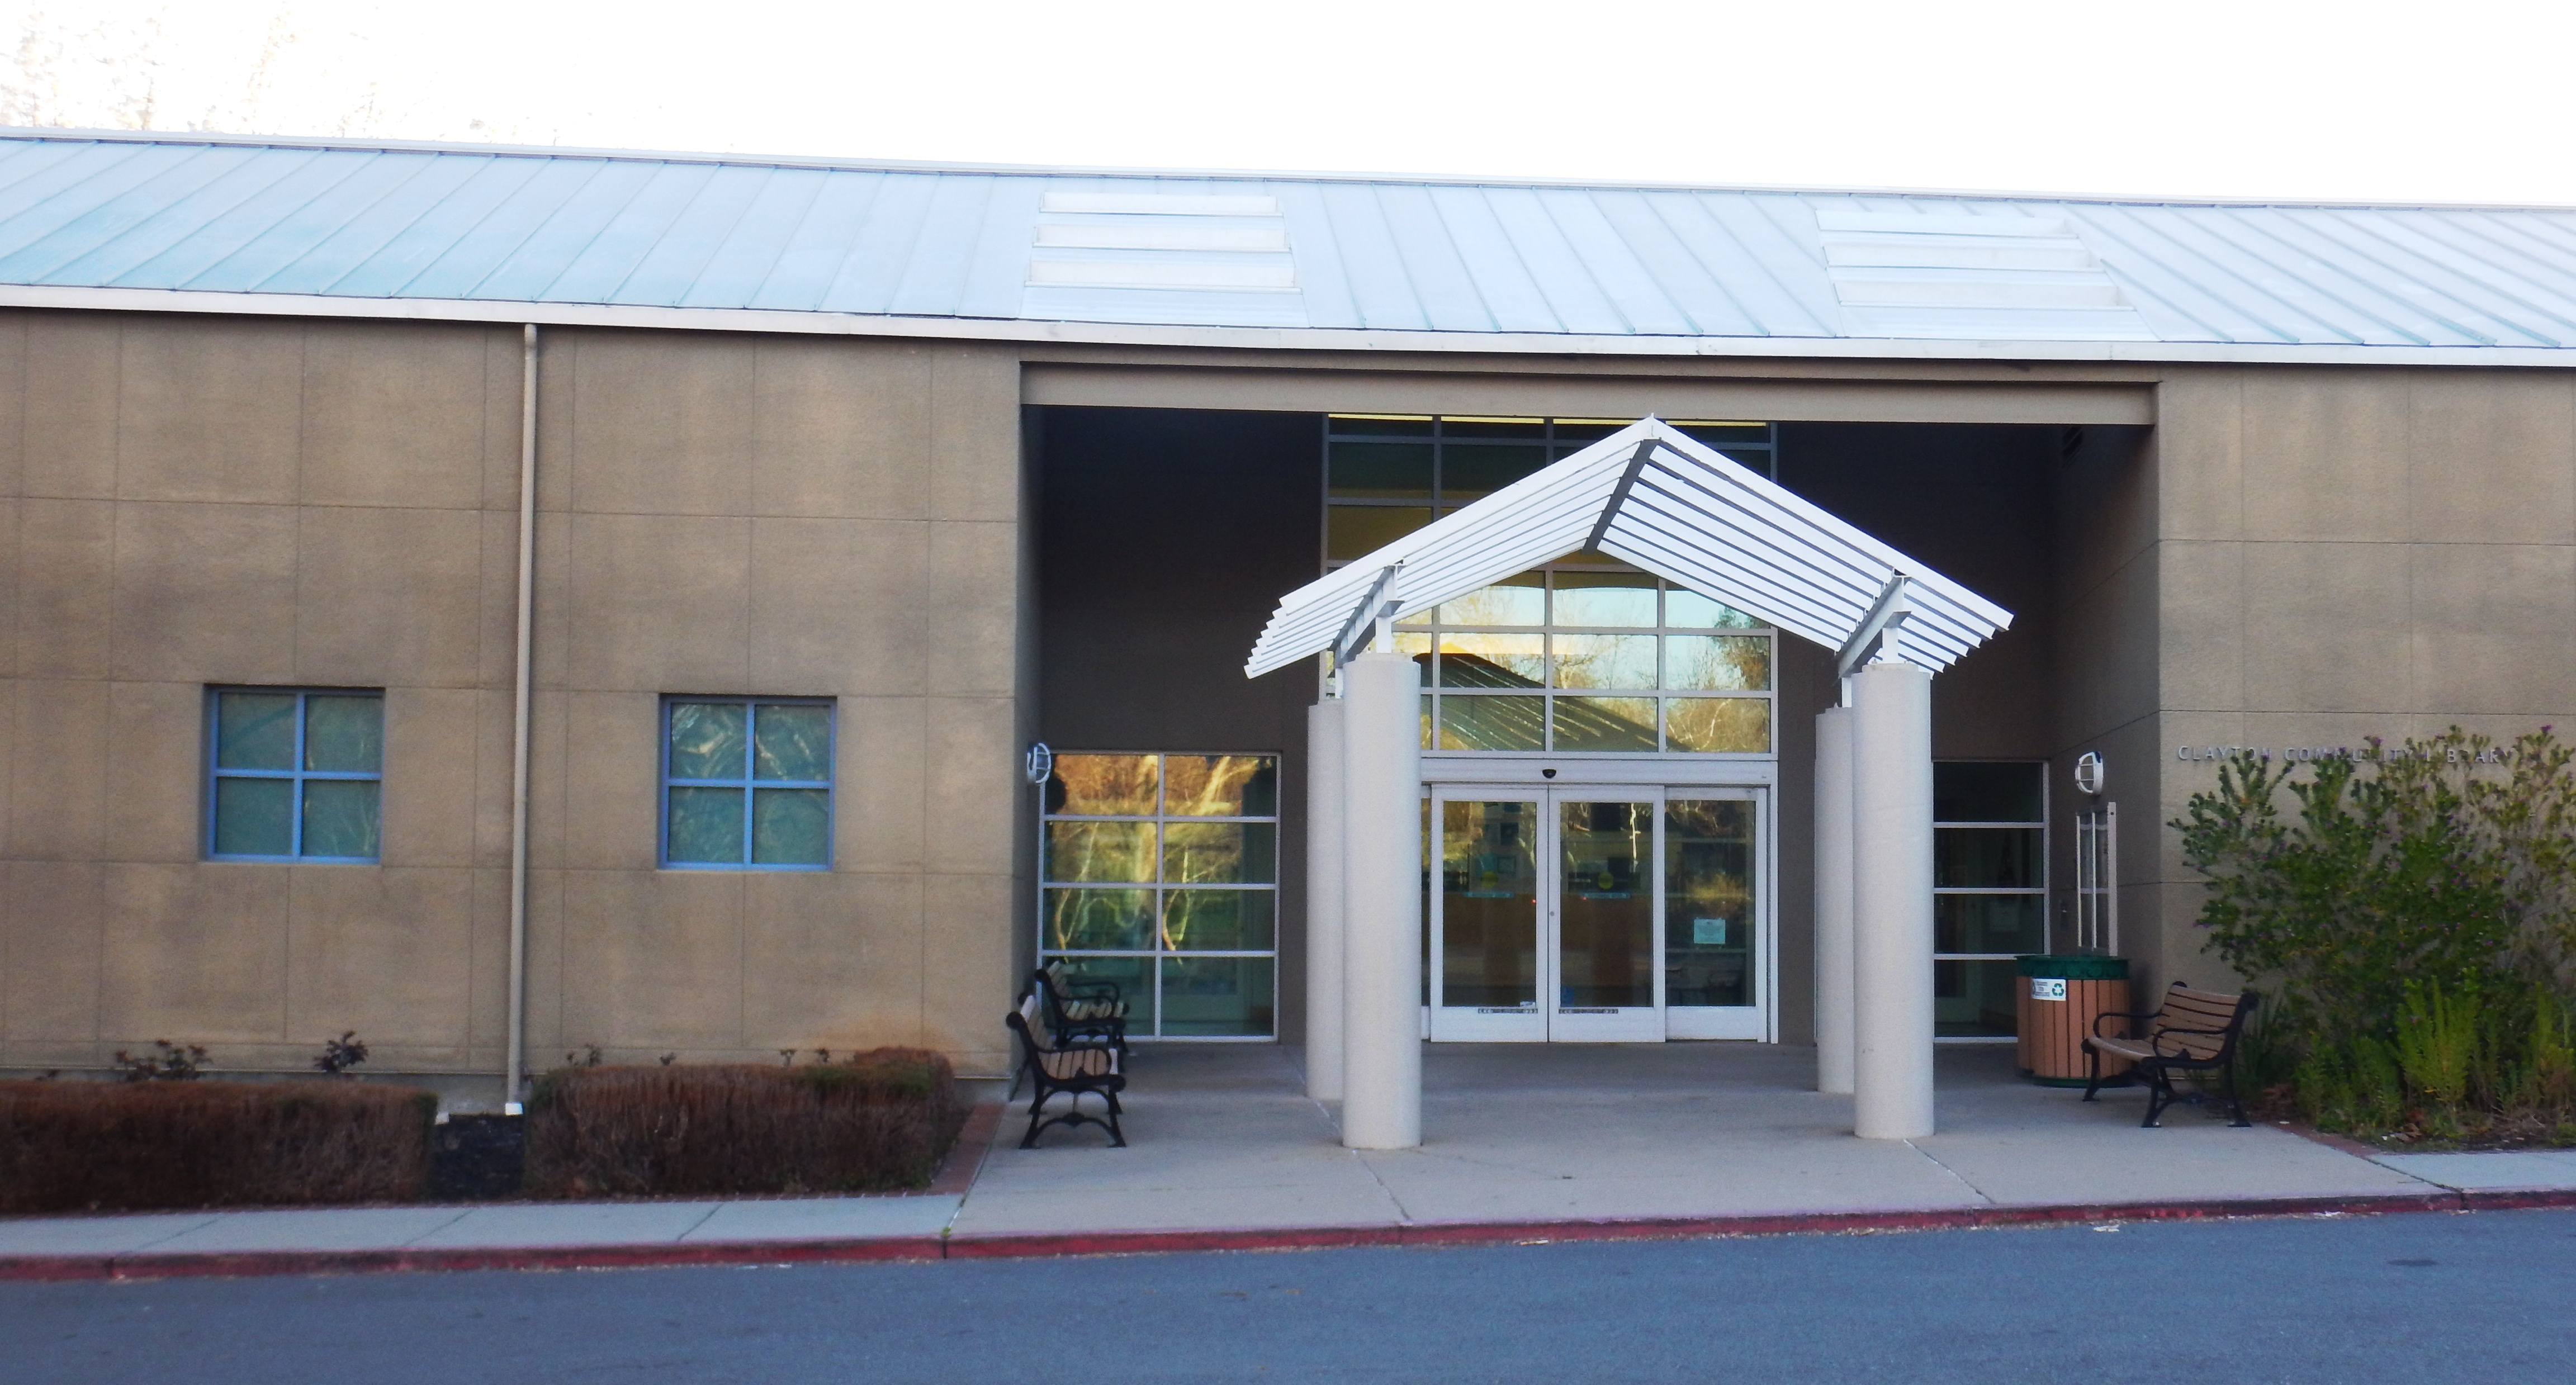 Nlh library